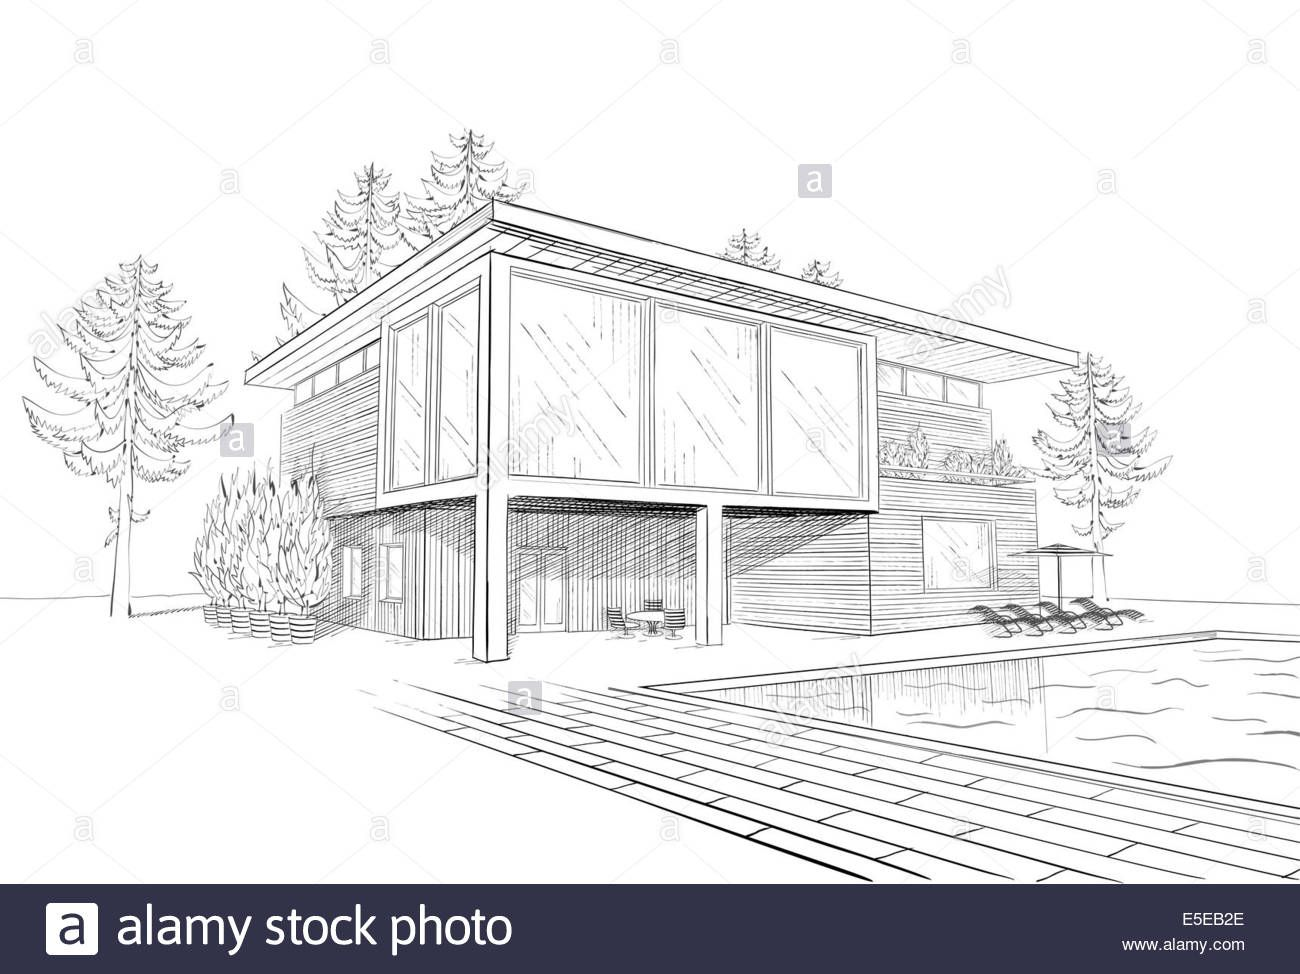 Image Result For Pencil Sketch Water Pool House Design Drawing Dream House Sketch Swimming Pool Art